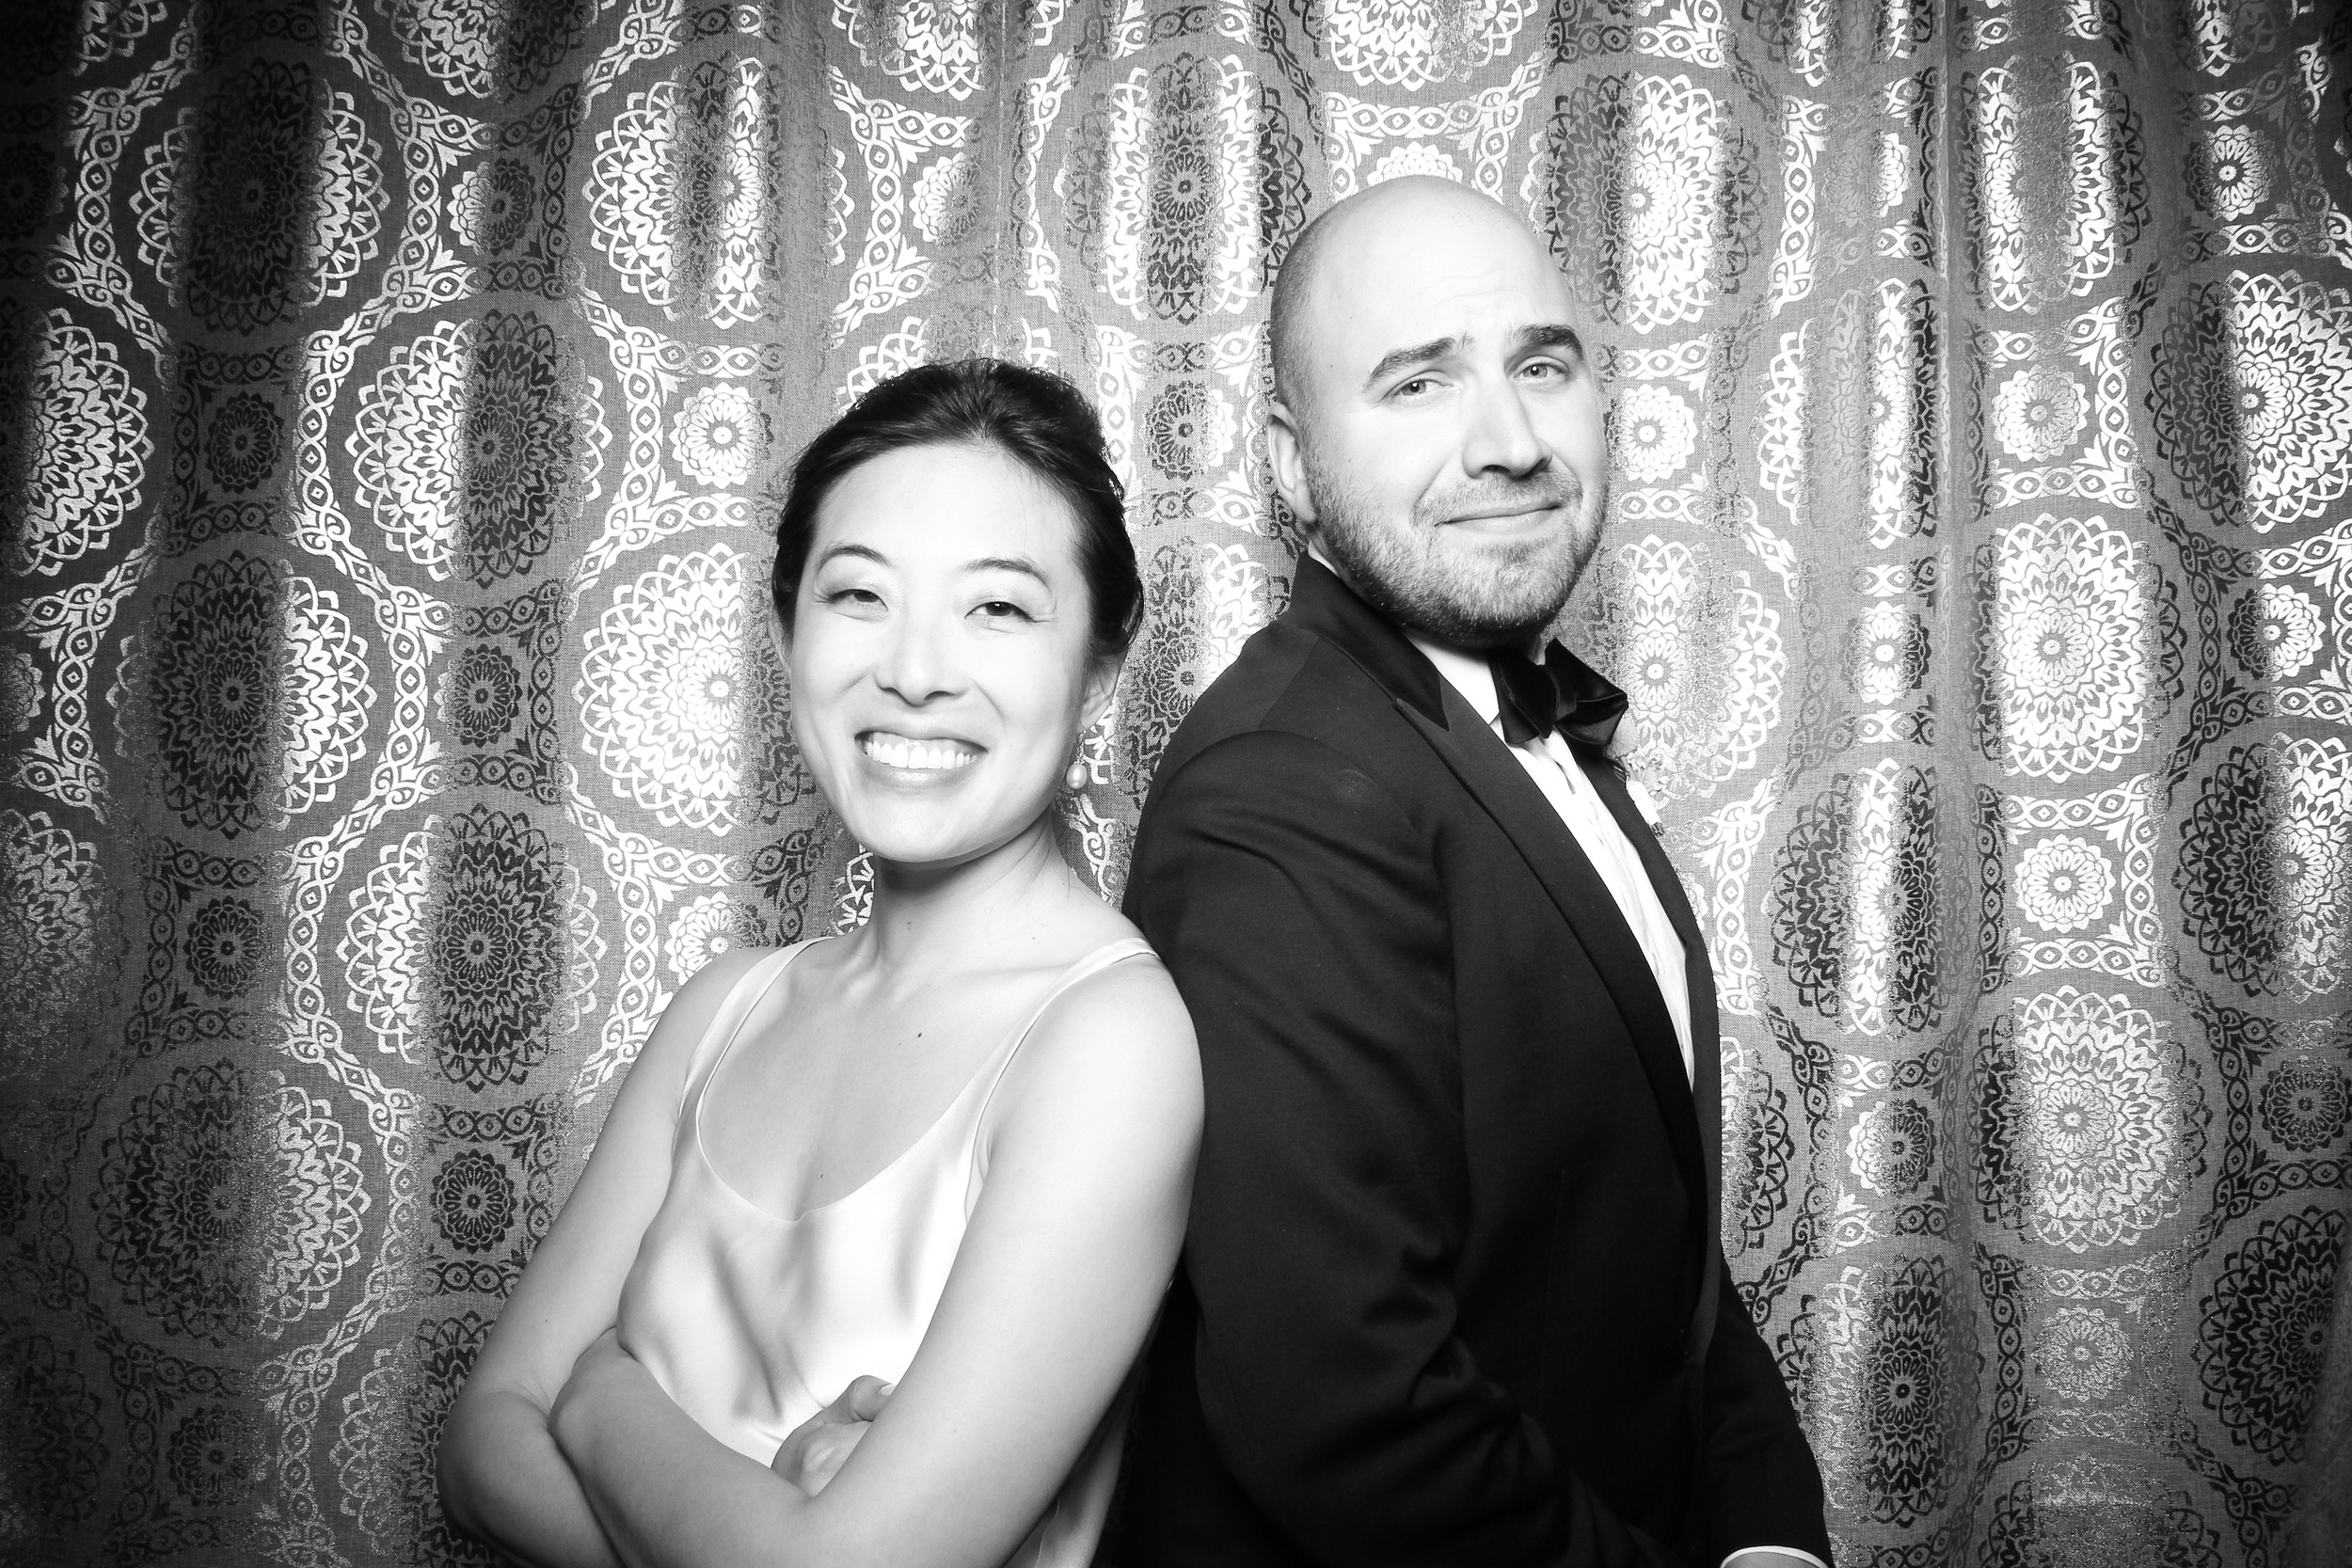 The bride and groom take a photo booth picture at the Adler Planetarium!